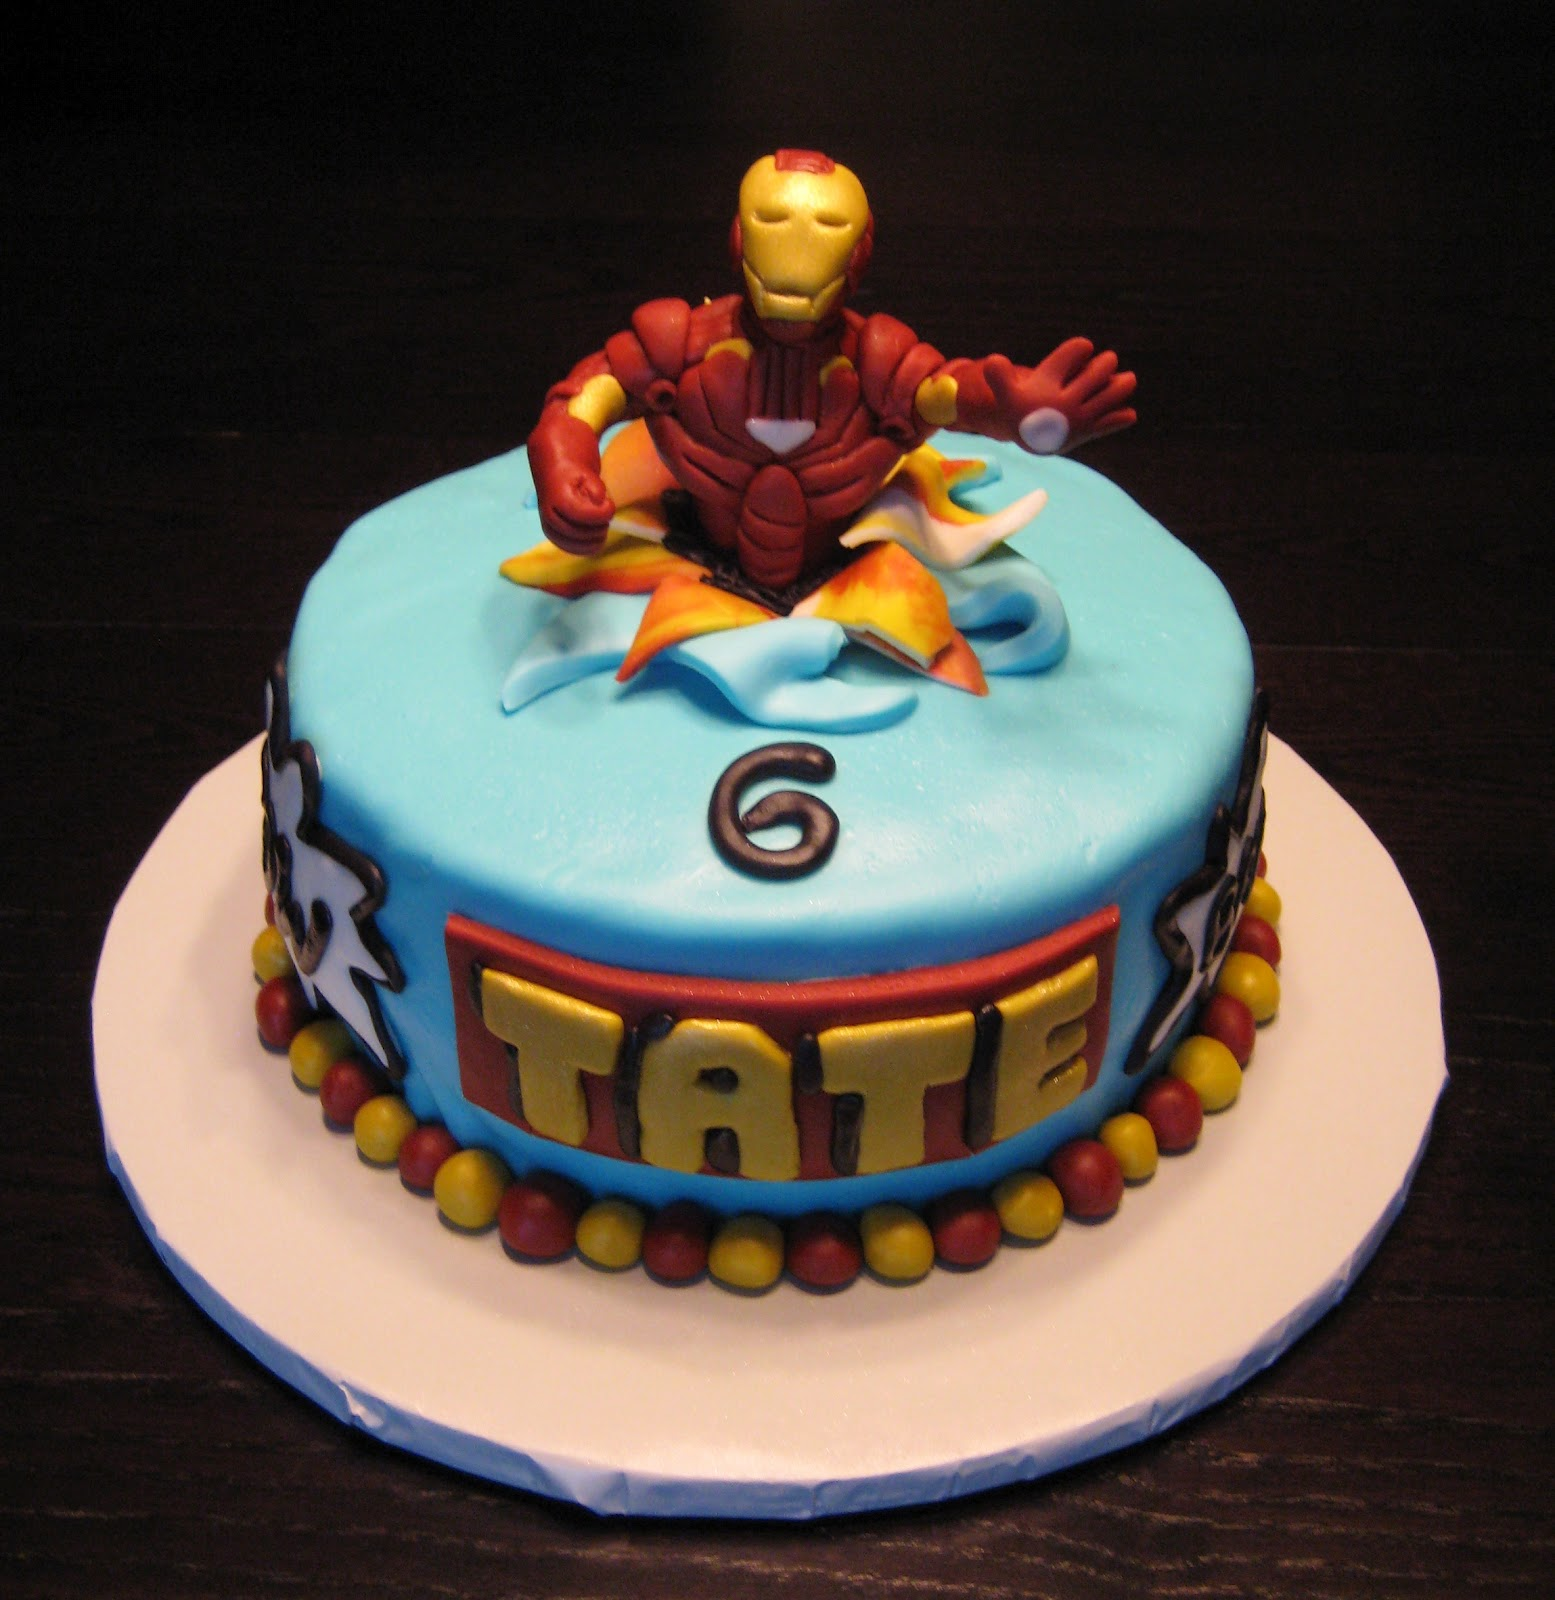 Birthday Cake Pictures For A Man : Iron Man Birthday Cake - Bing images